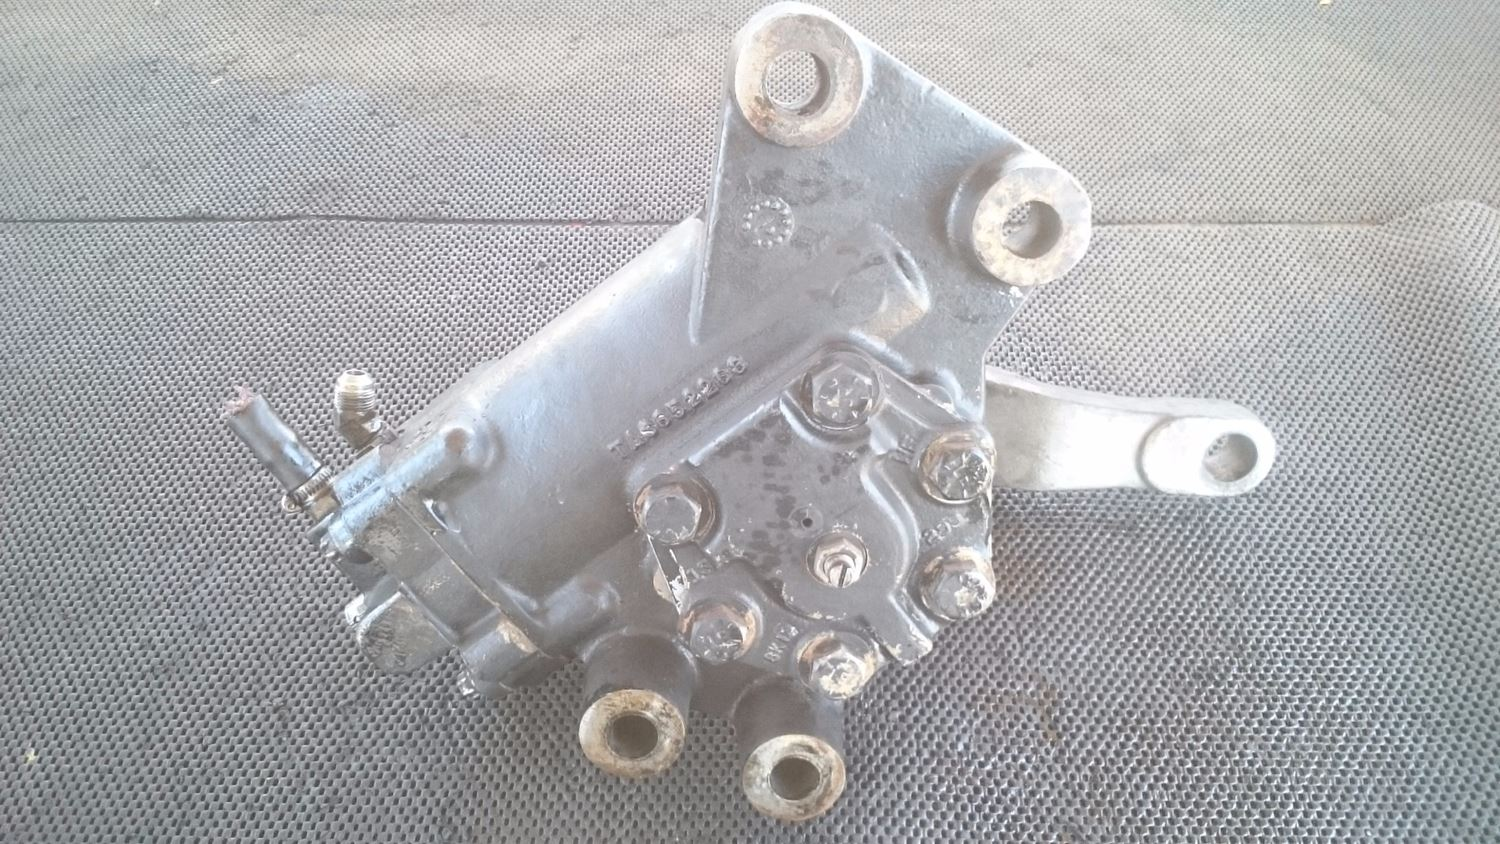 Used Steering & Steering Parts - Steering Gears for 1999 STERLING A9513 for sale-59043800